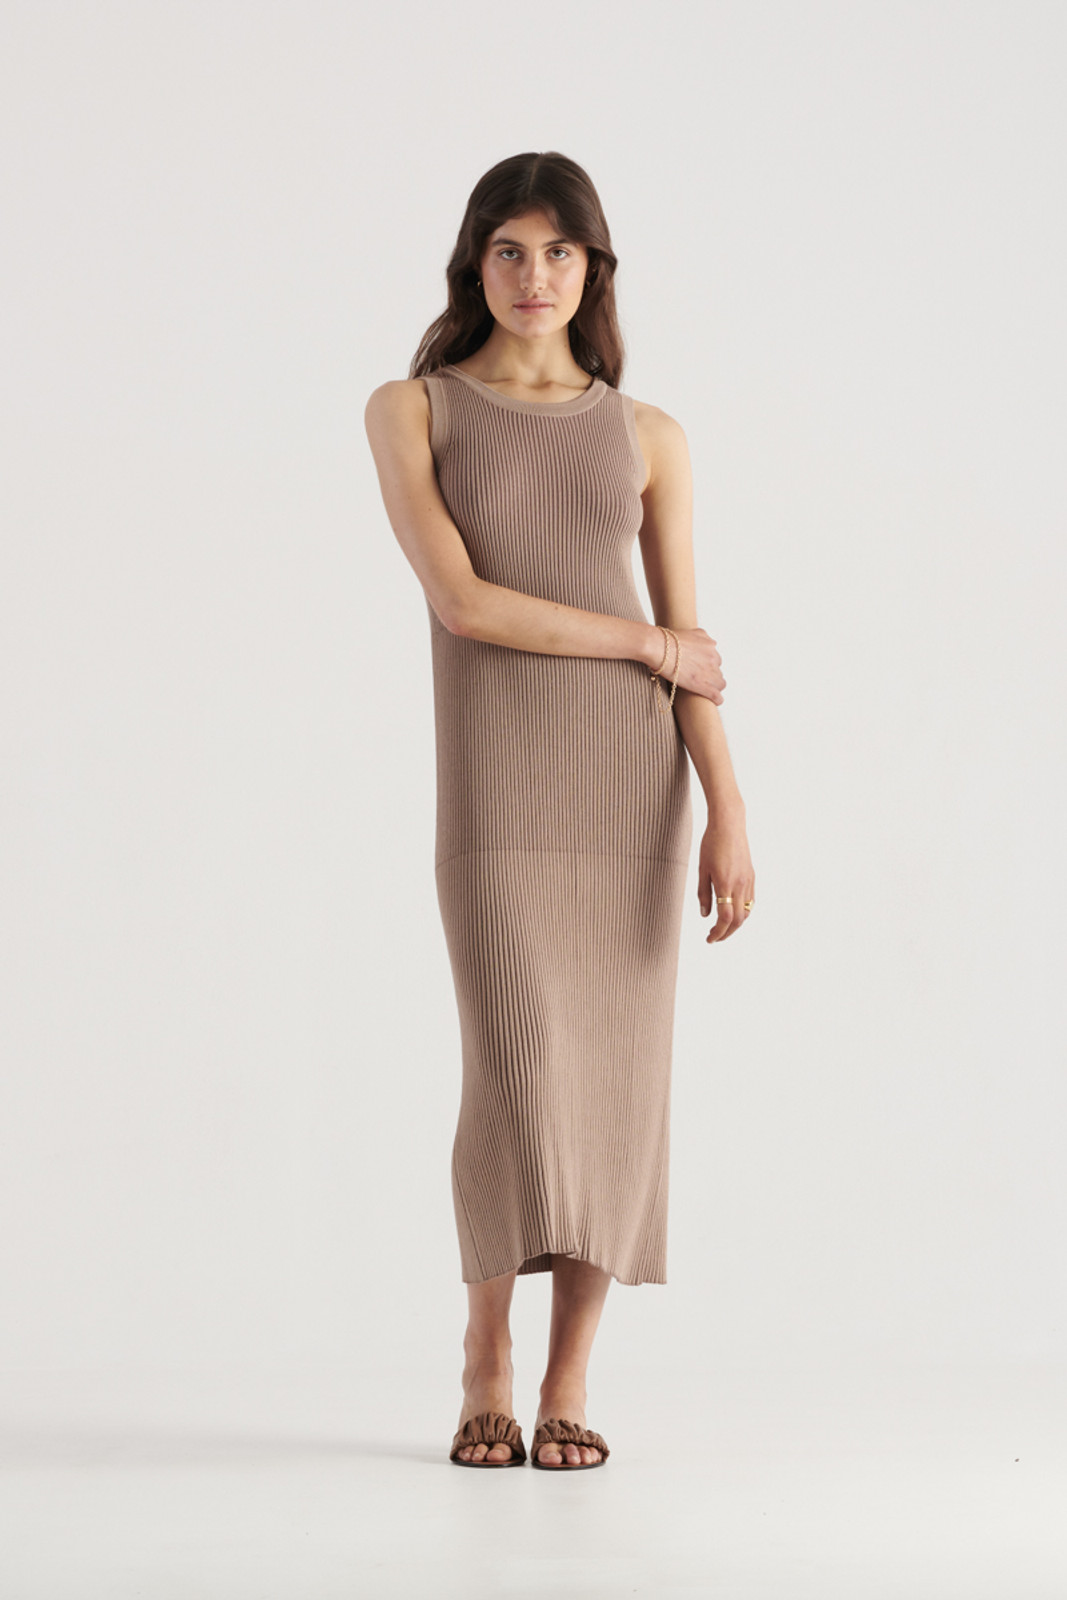 Elka Collective WomensBowie Knit Dress Taupe  0